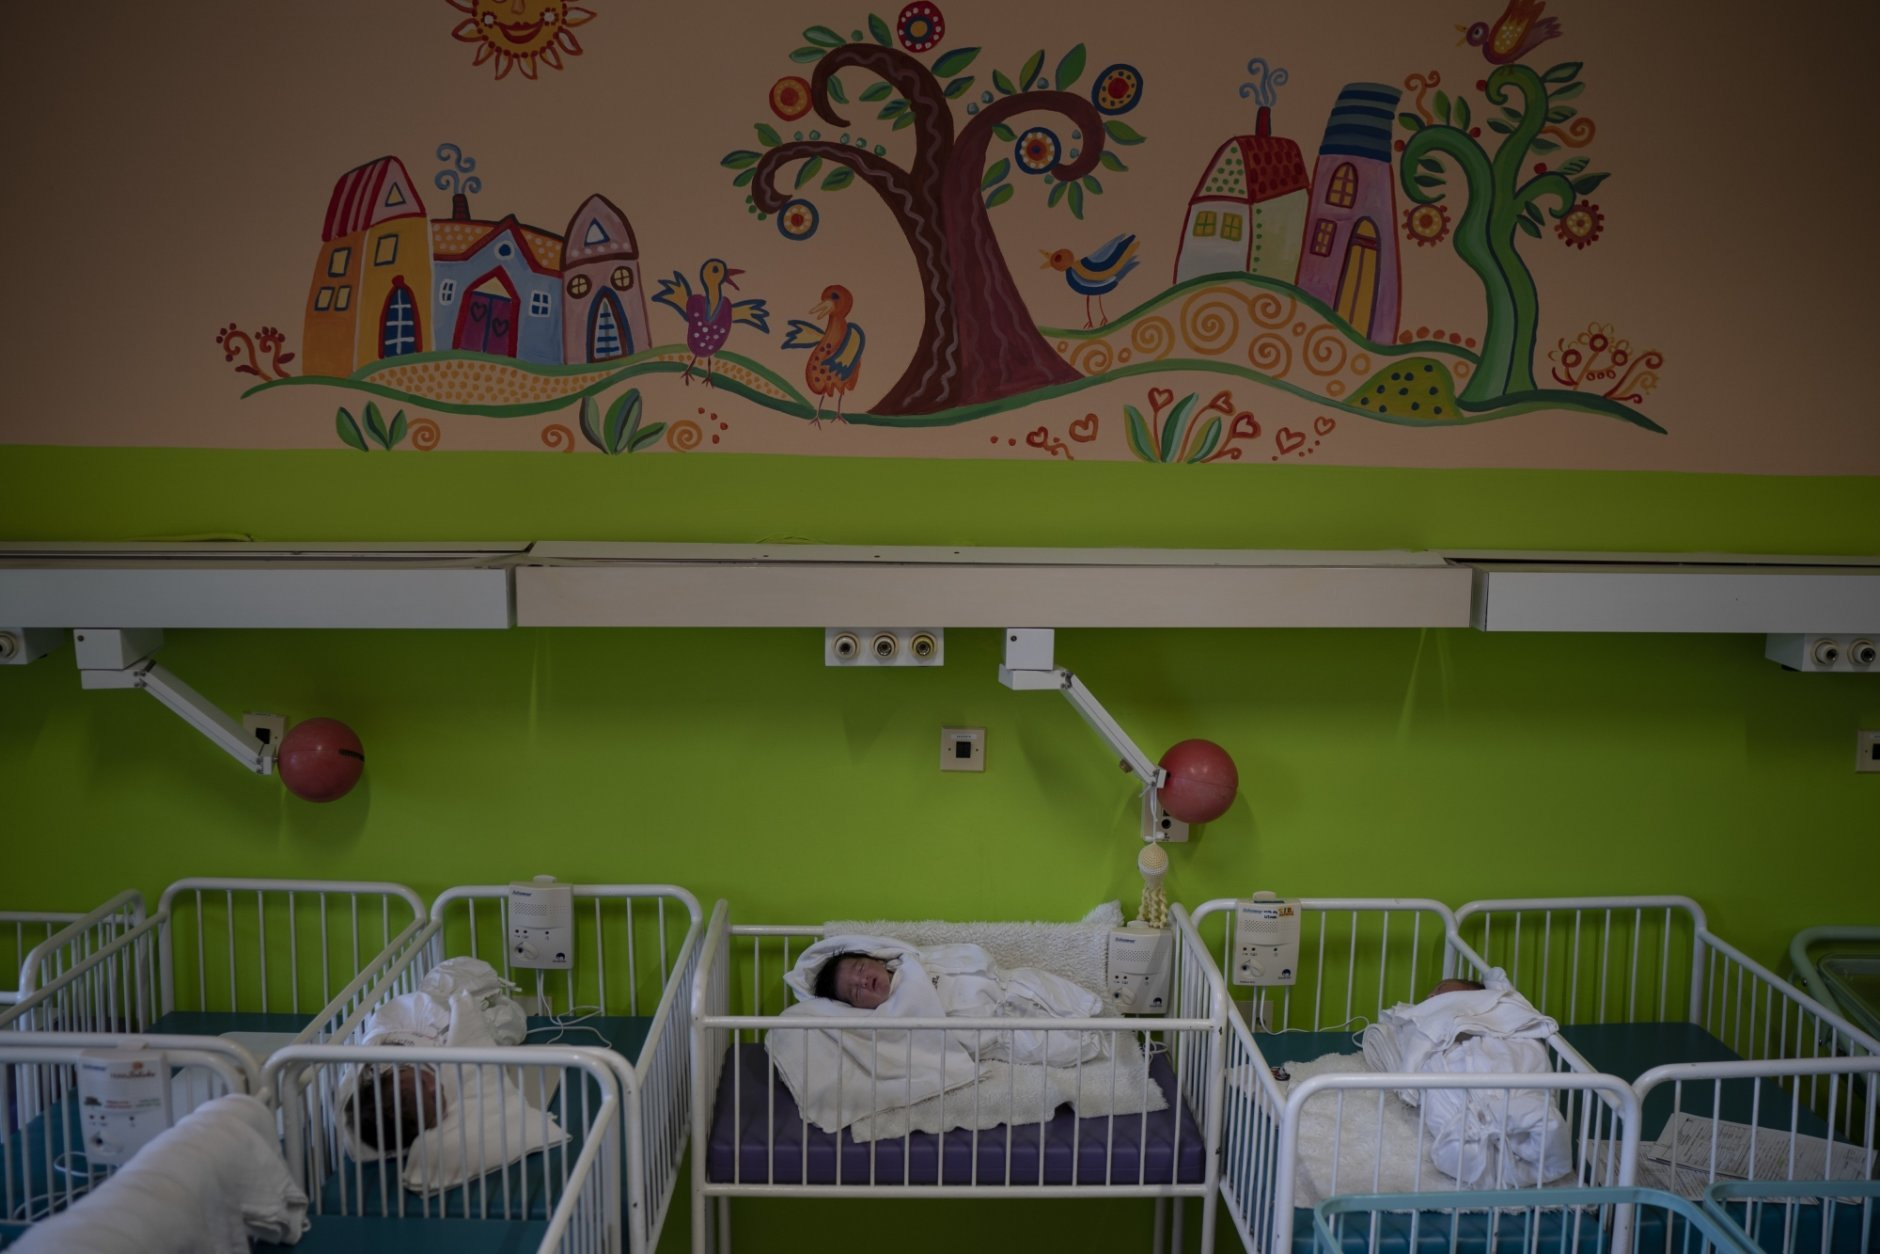 In this Nov. 16, 2018, photo, three babies whose mothers absconded the hospital, rest in their cribs at the Kezmarok hospital in Kezmarok, Slovakia. An investigation by The Associated Press has found that women and their newborns in Slovakia are routinely, unjustifiably and illegally detained in hospitals across the European Union country. (AP Photo/Felipe Dana)